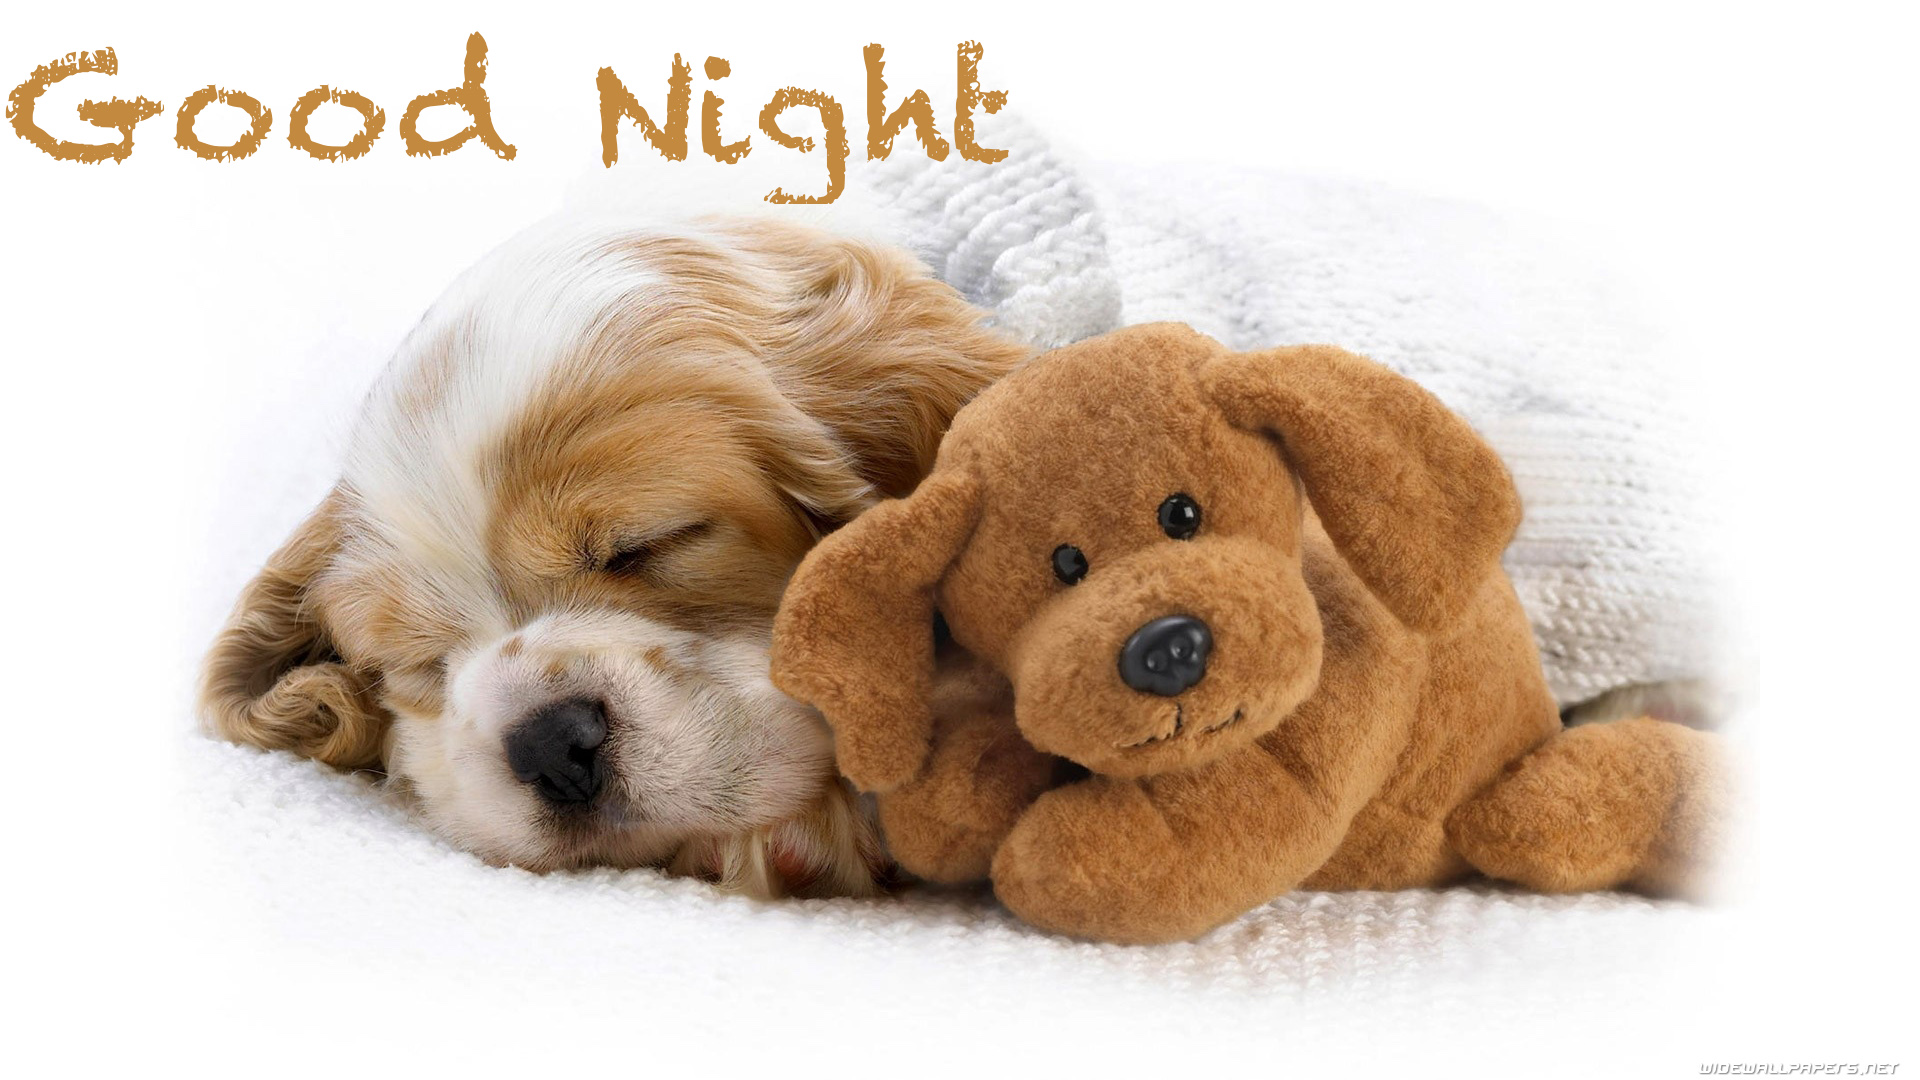 Good night dog image